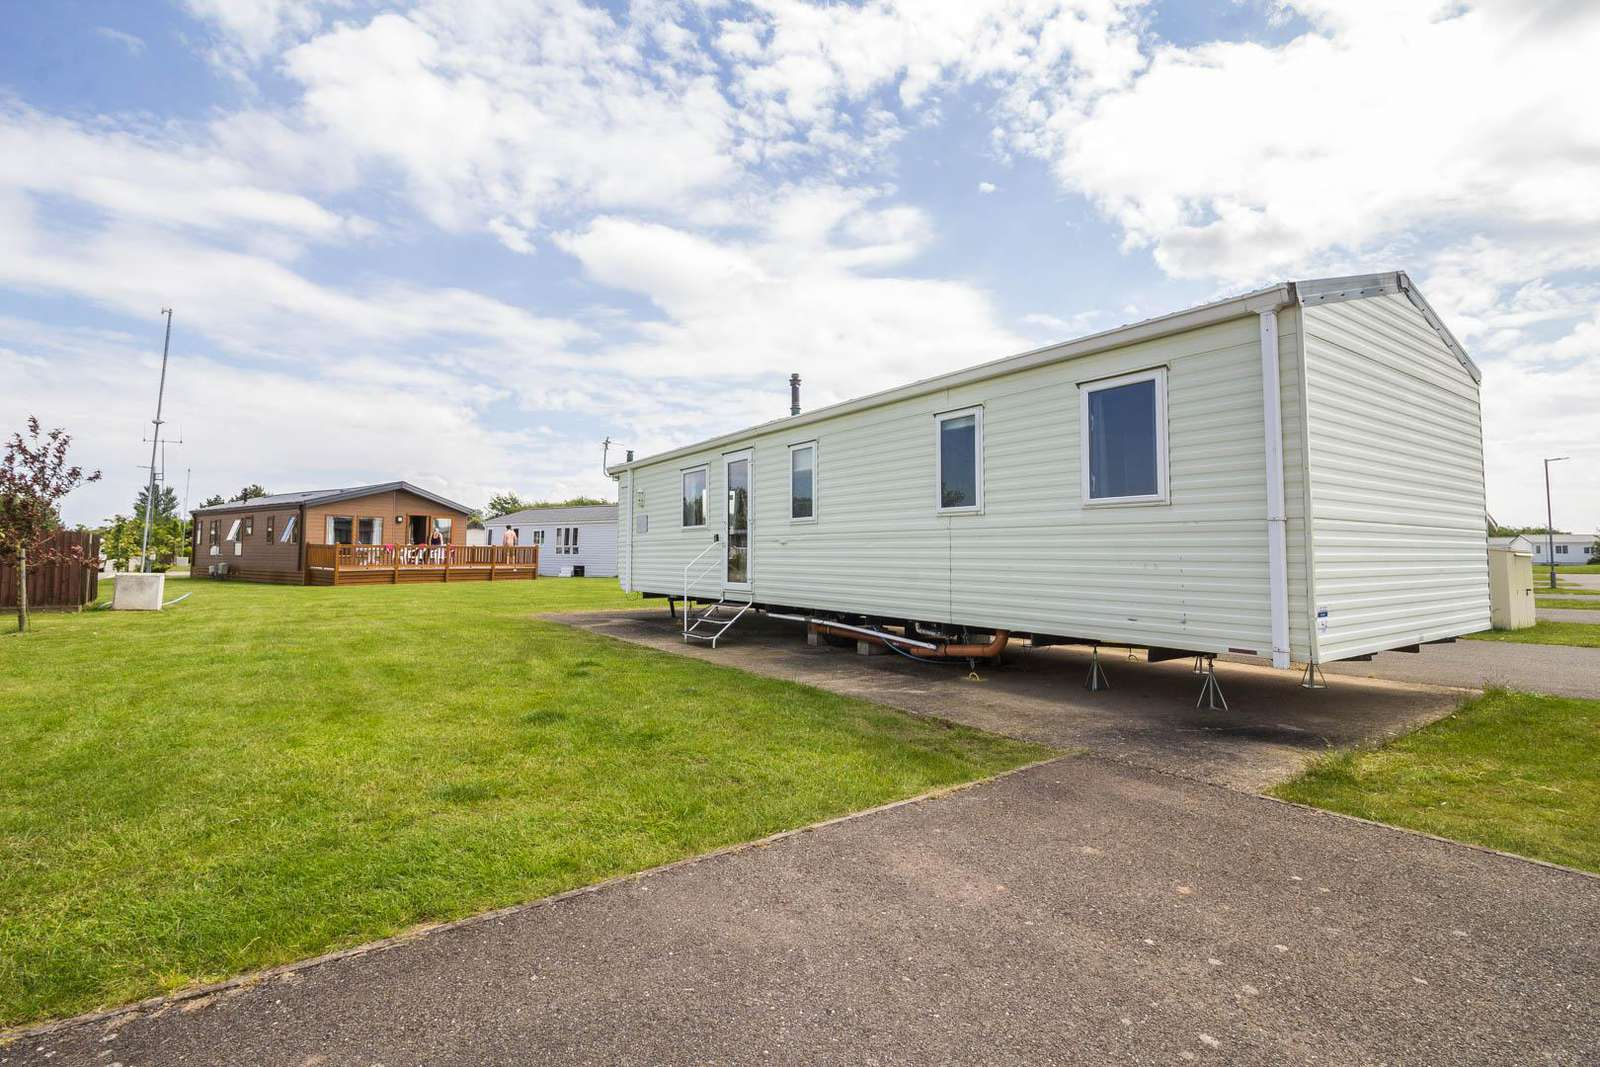 33042S – Sunset area, 3 bed, 8 berth with a pond view, D/G & C/H. Ruby rated. - property